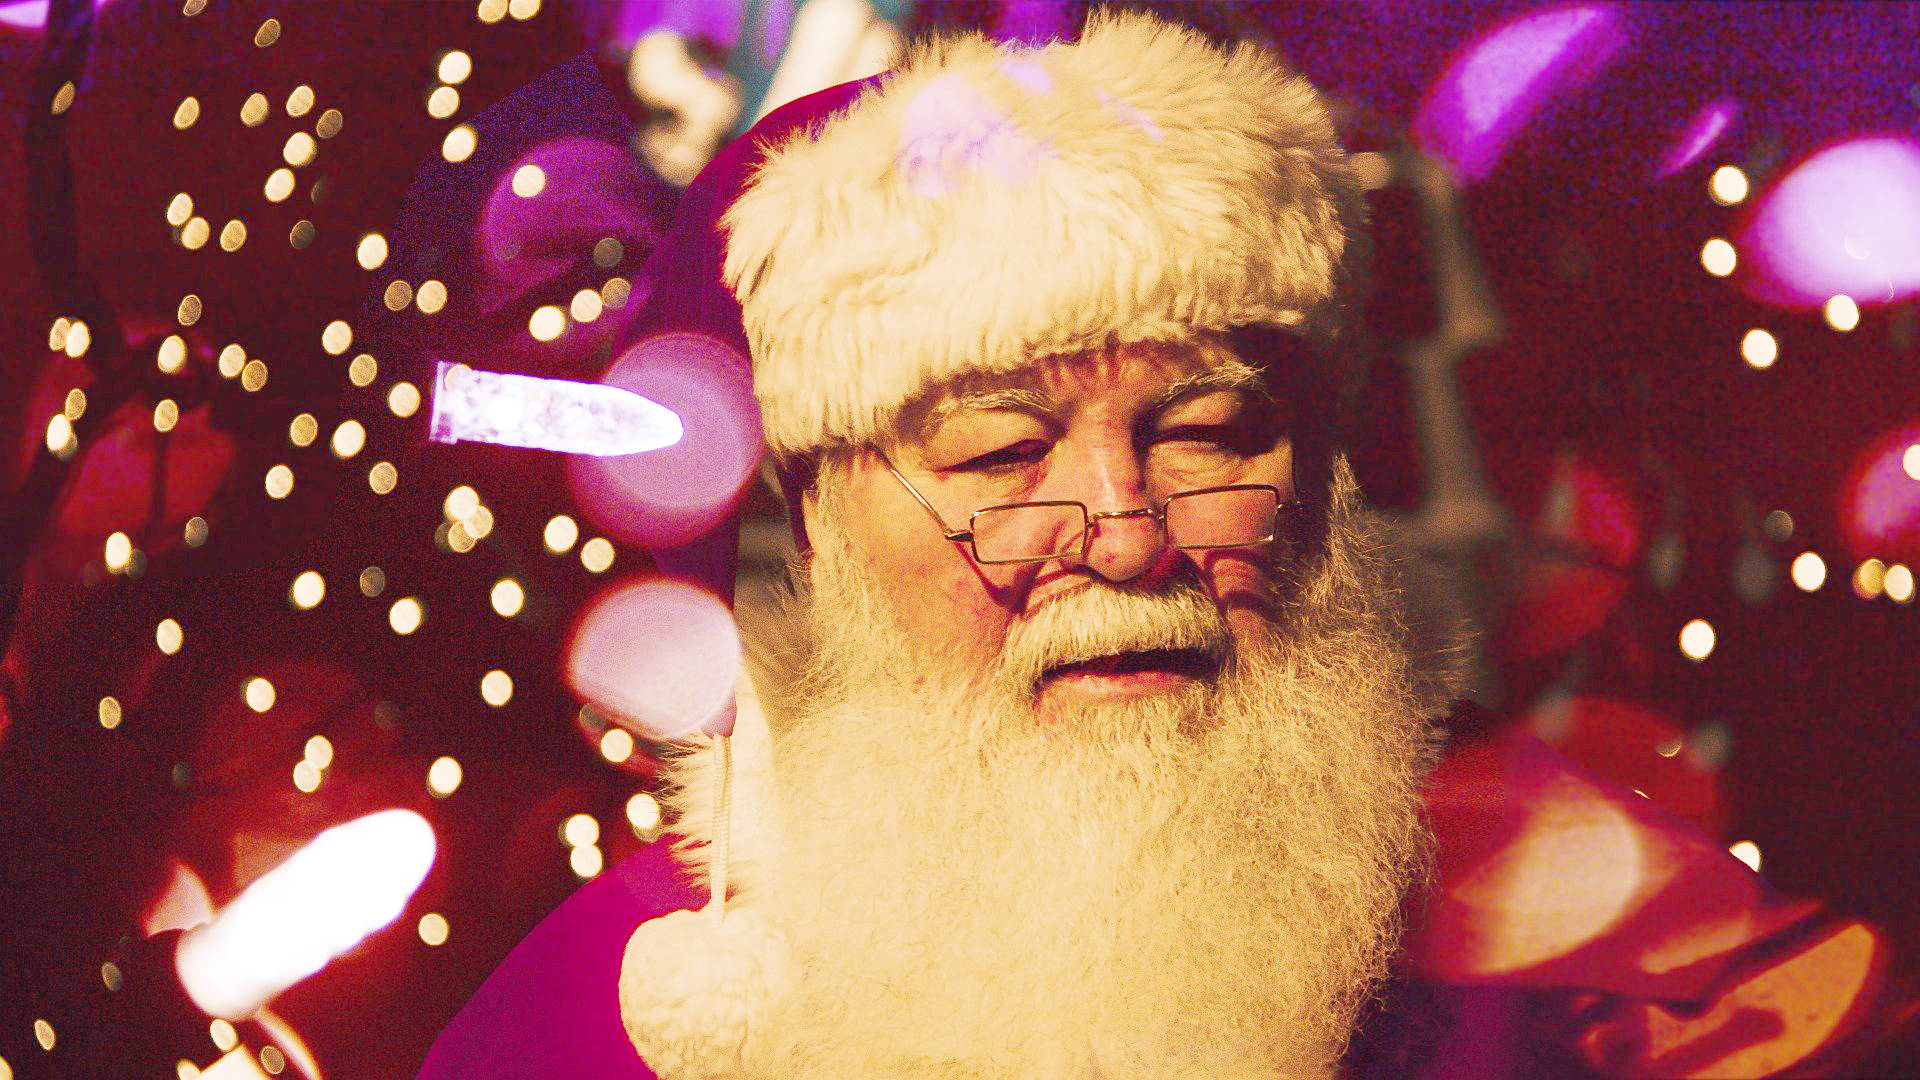 Santa Claus can be seen in many places at this time of year. (Pixabay.com)